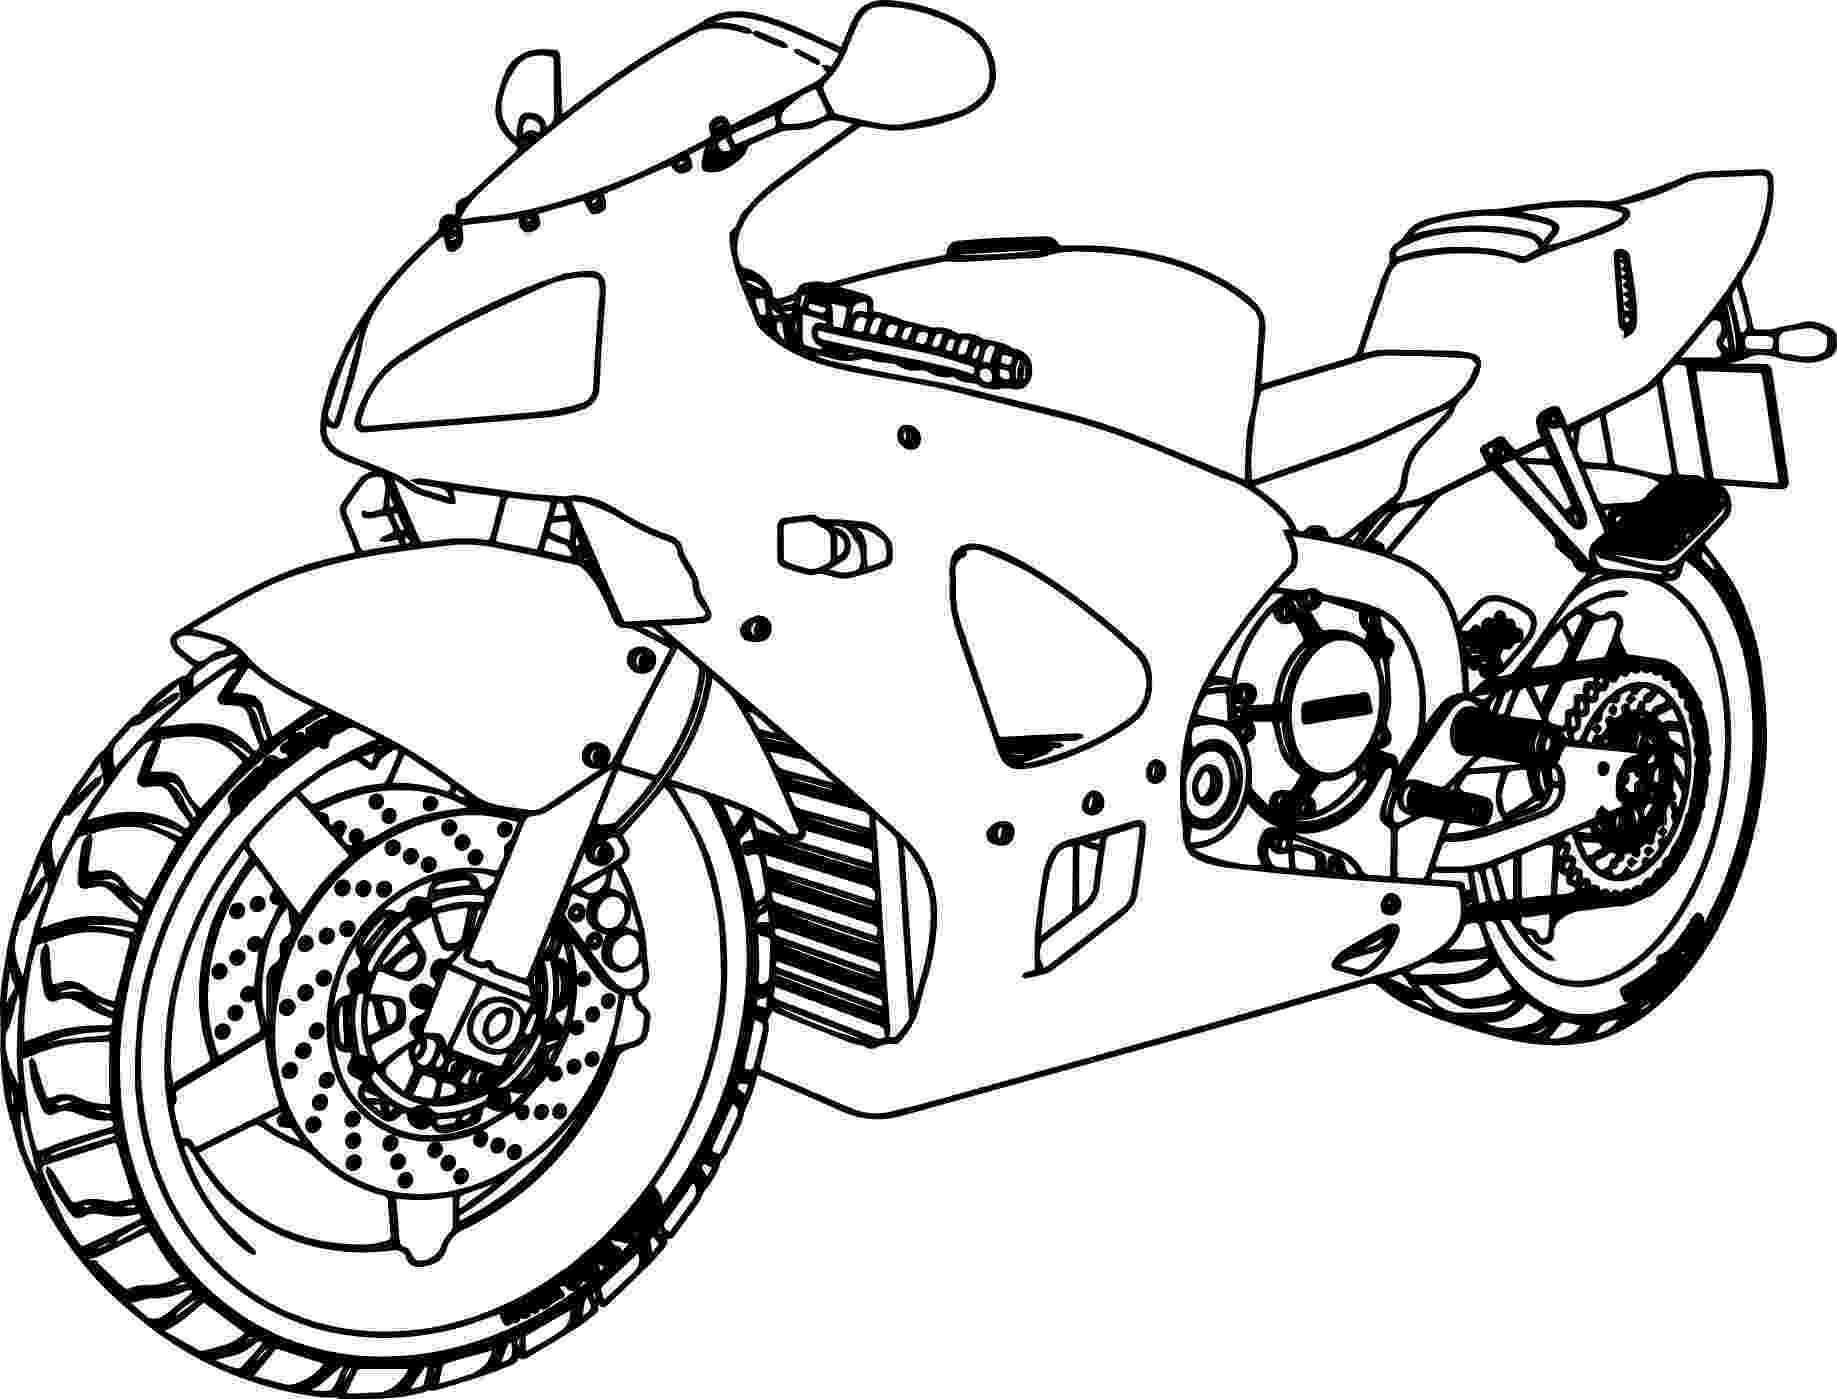 police motorcycle coloring pages police motorcycle coloring pages coloring pages coloring motorcycle police pages